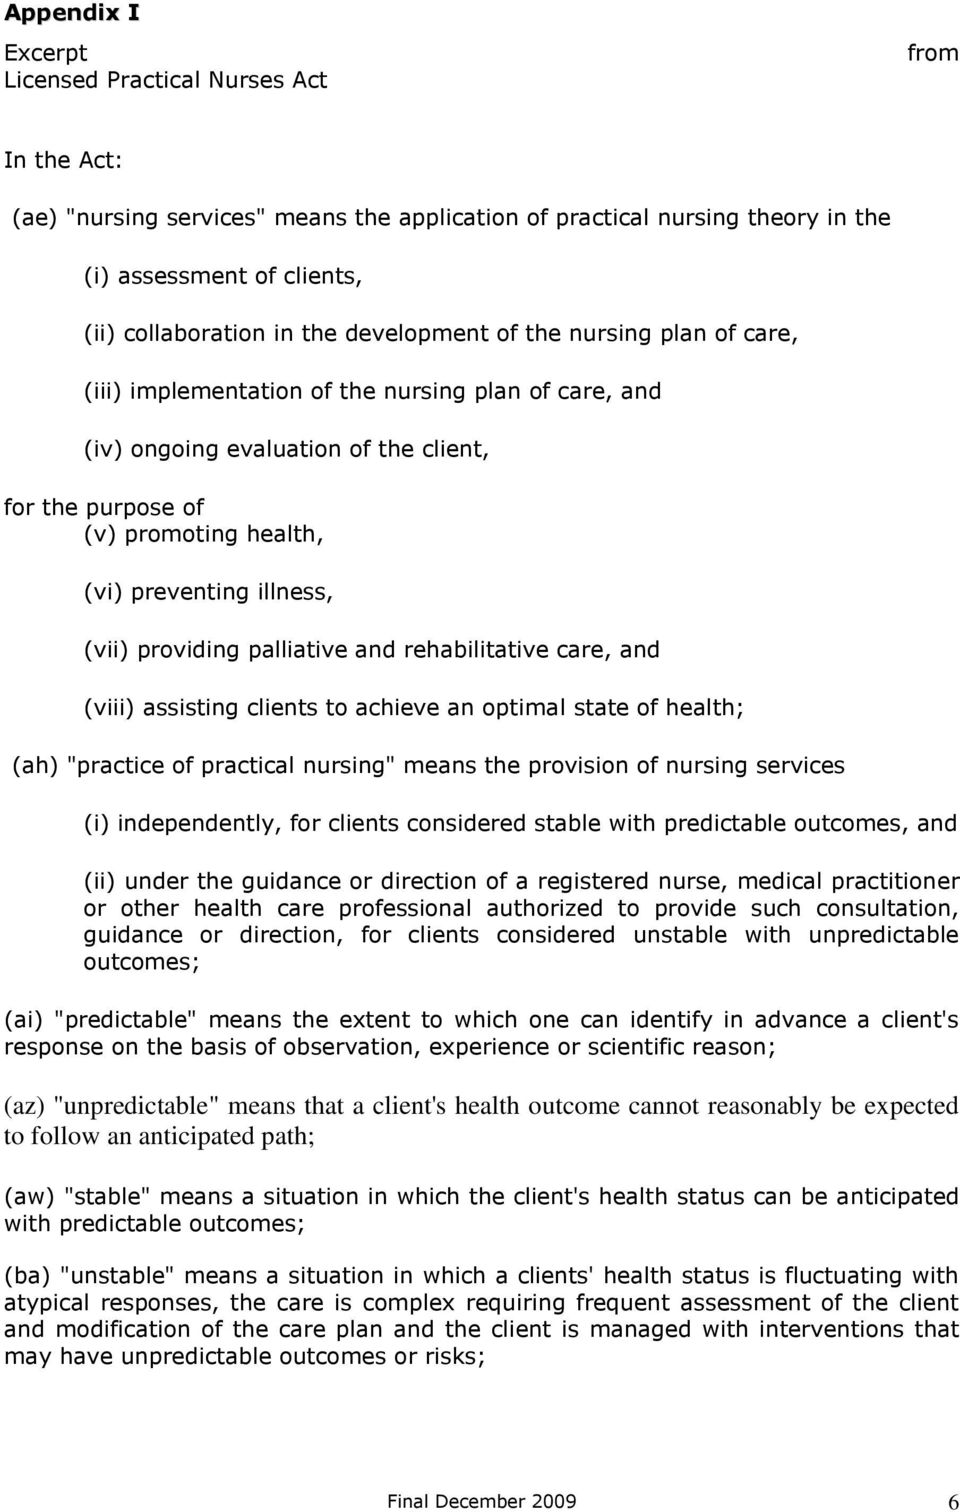 "(vii) providing palliative and rehabilitative care, and (viii) assisting clients to achieve an optimal state of health; (ah) ""practice of practical nursing"" means the provision of nursing services"